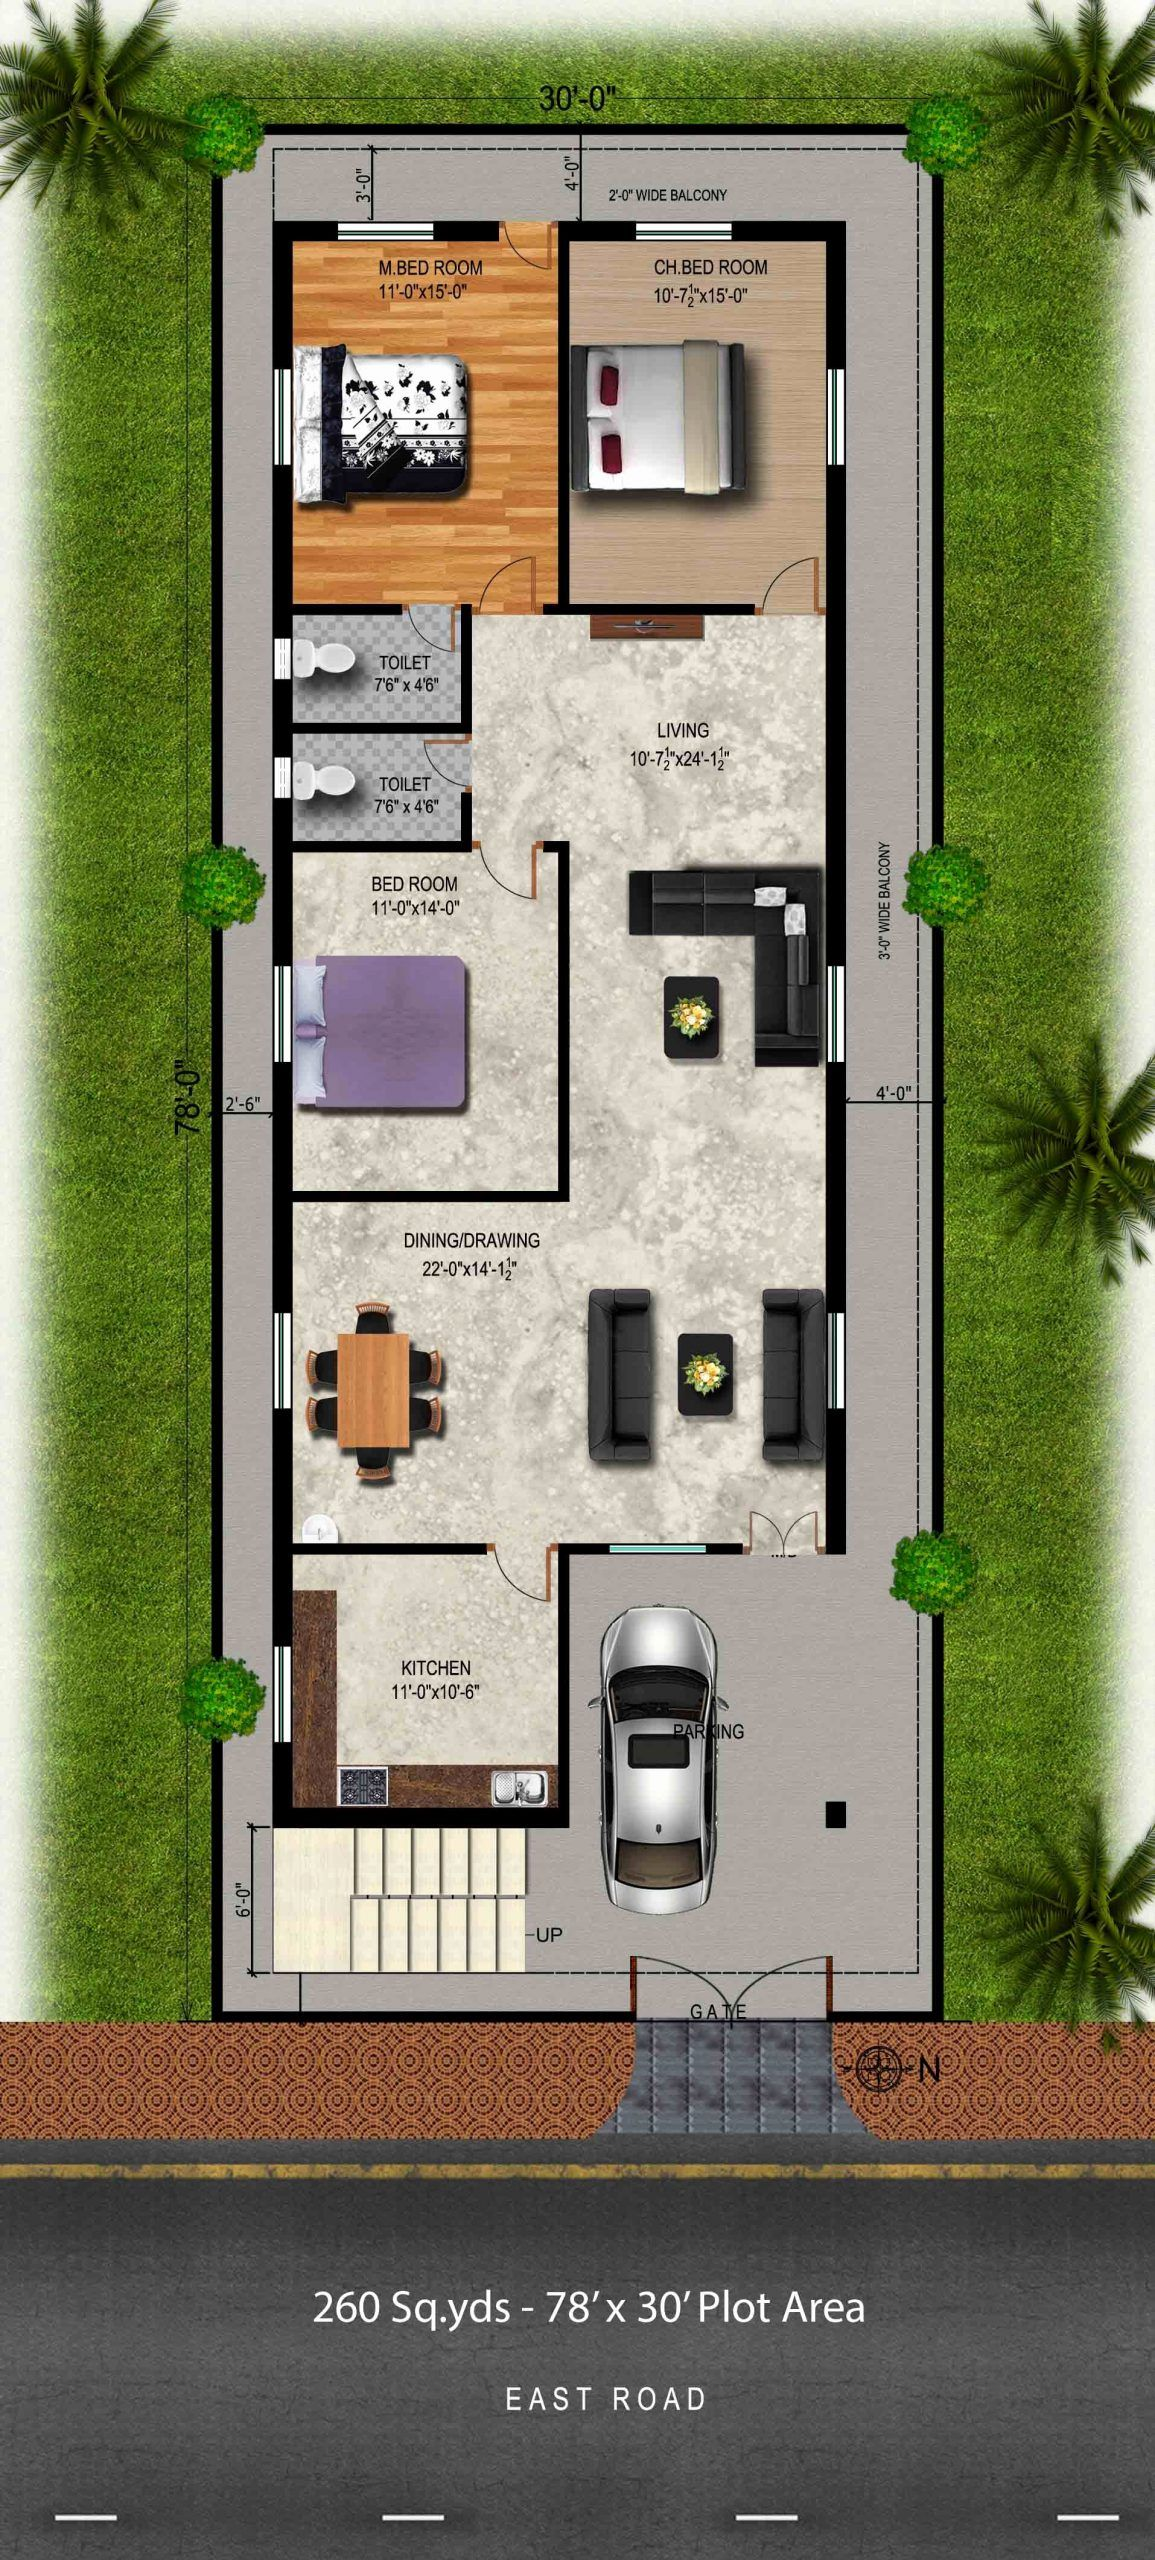 250 Square Meters Home Design Inspirational Download Free Plans 260 Sq Yds 30x78 Sq Ft East Face House 2bhk House Plan Duplex House Plans House Floor Design